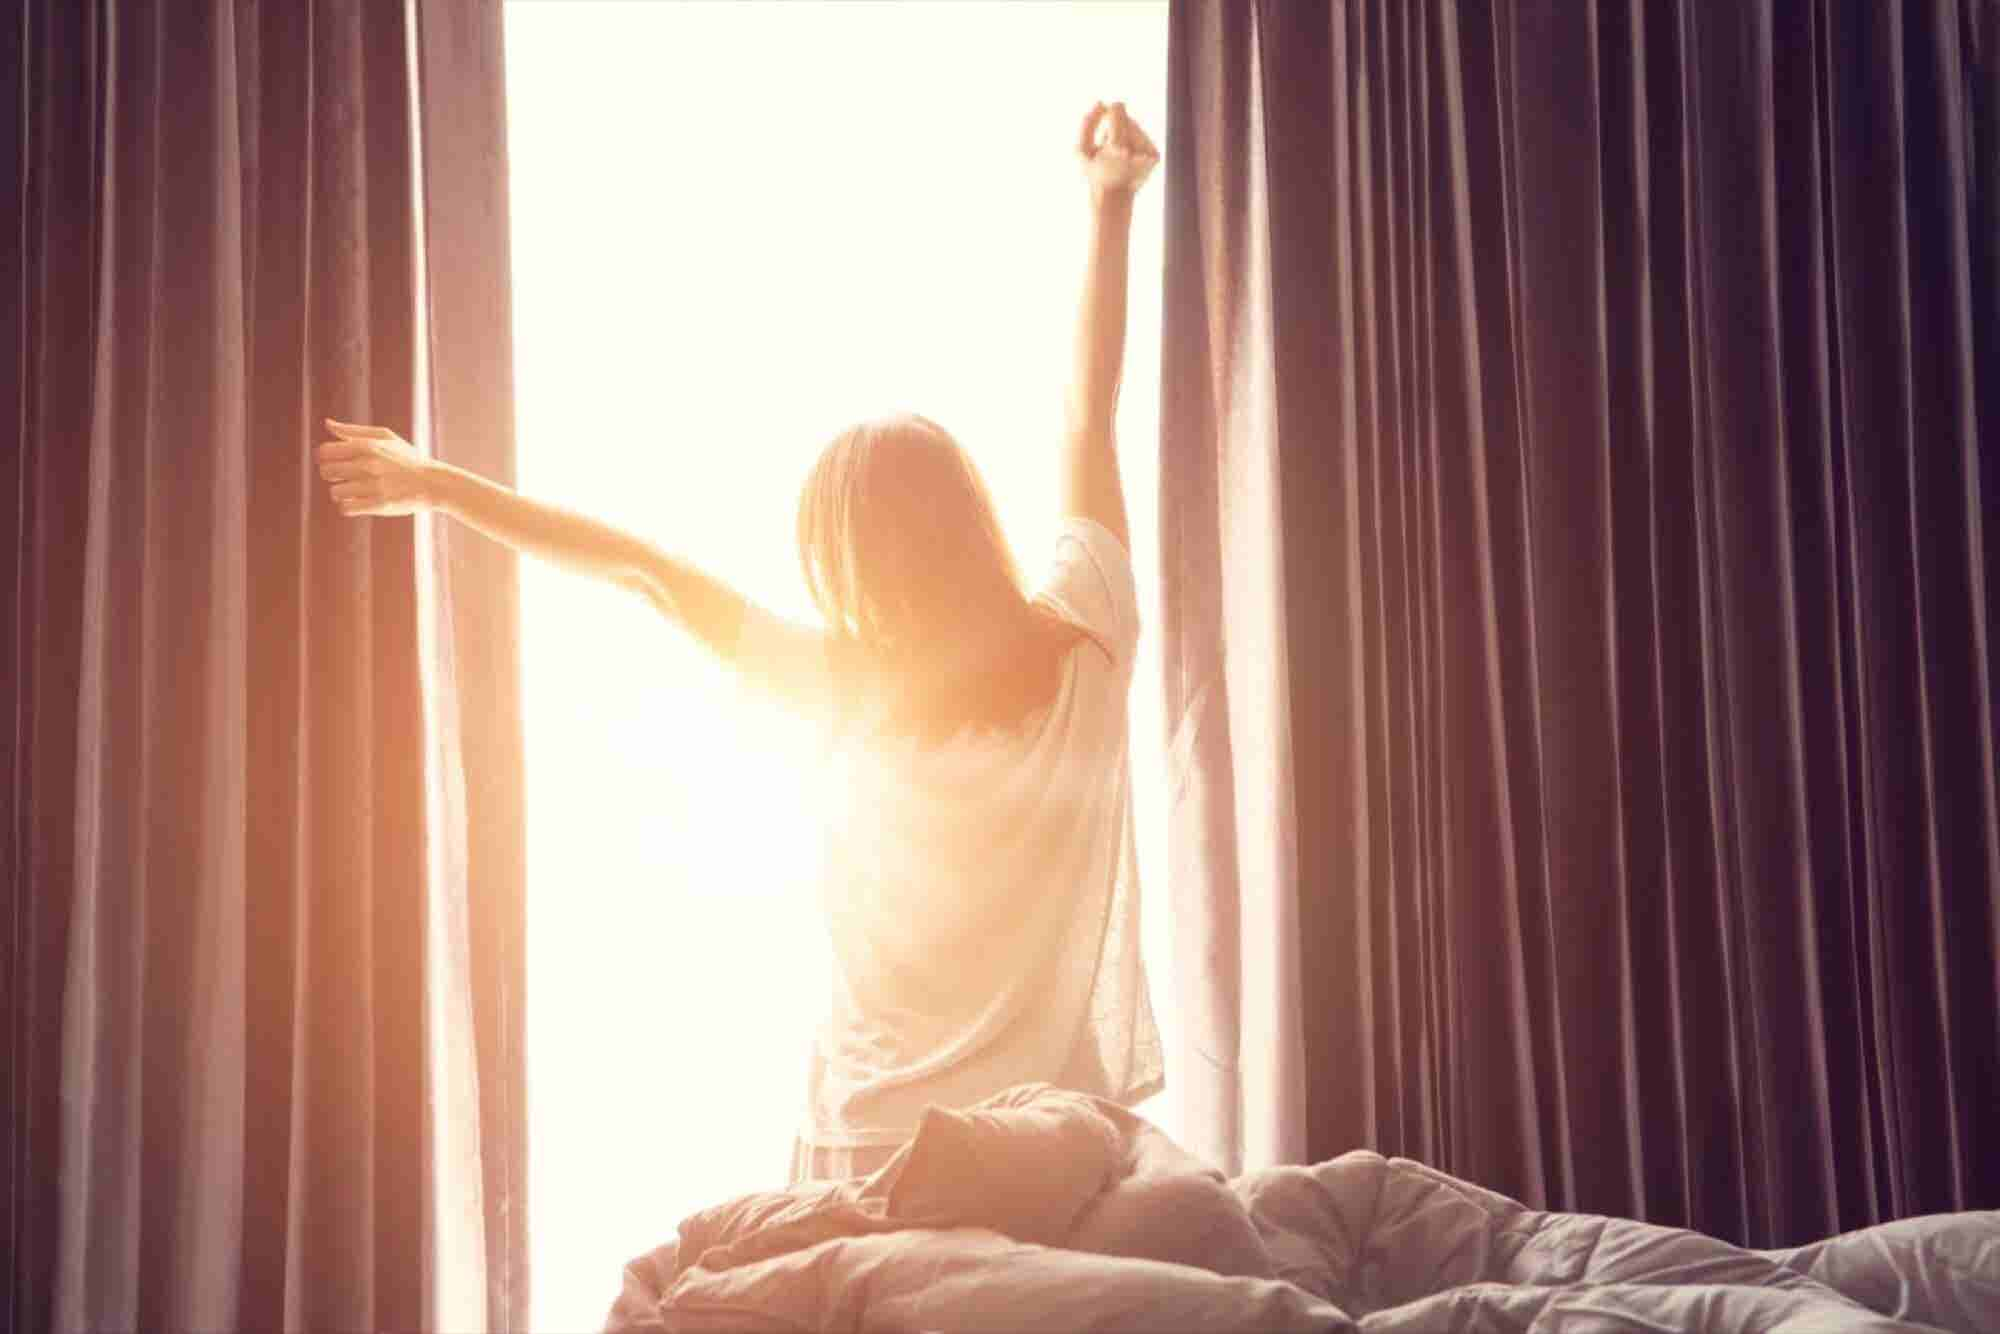 Fifty-Three Percent of People Feel Dreadful When Their Alarm Goes Off in the A.M. -- Don't Be One of Them